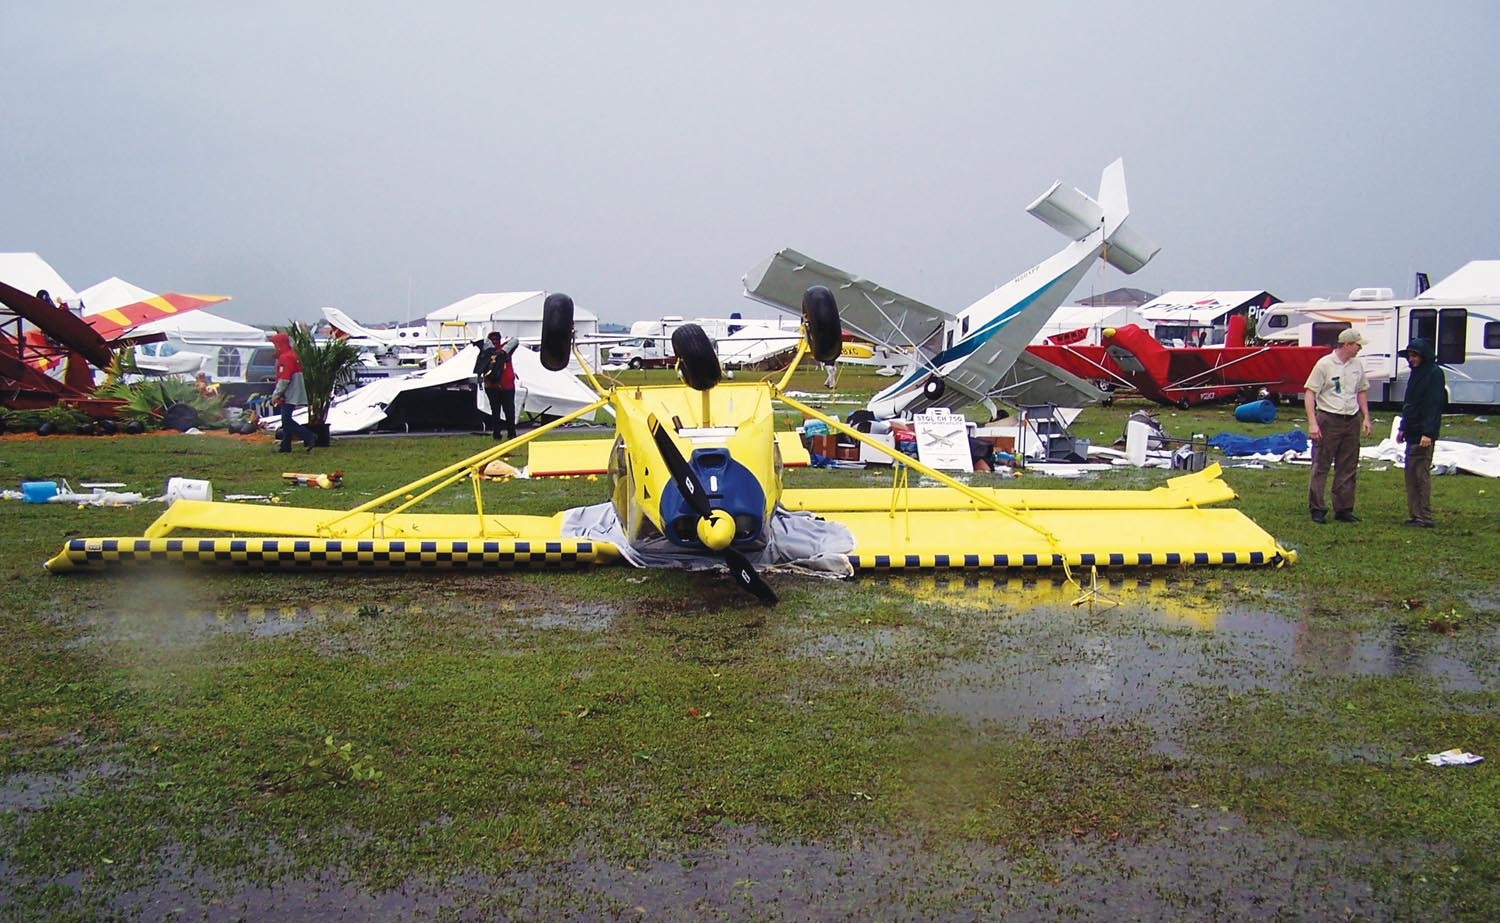 Dozens of airplanes, mostly experimentals, were seriously damaged when a tornado carved through the Sun 'n Fun homebuilt parking area in 2011. Thankfully, no one was seriously hurt.